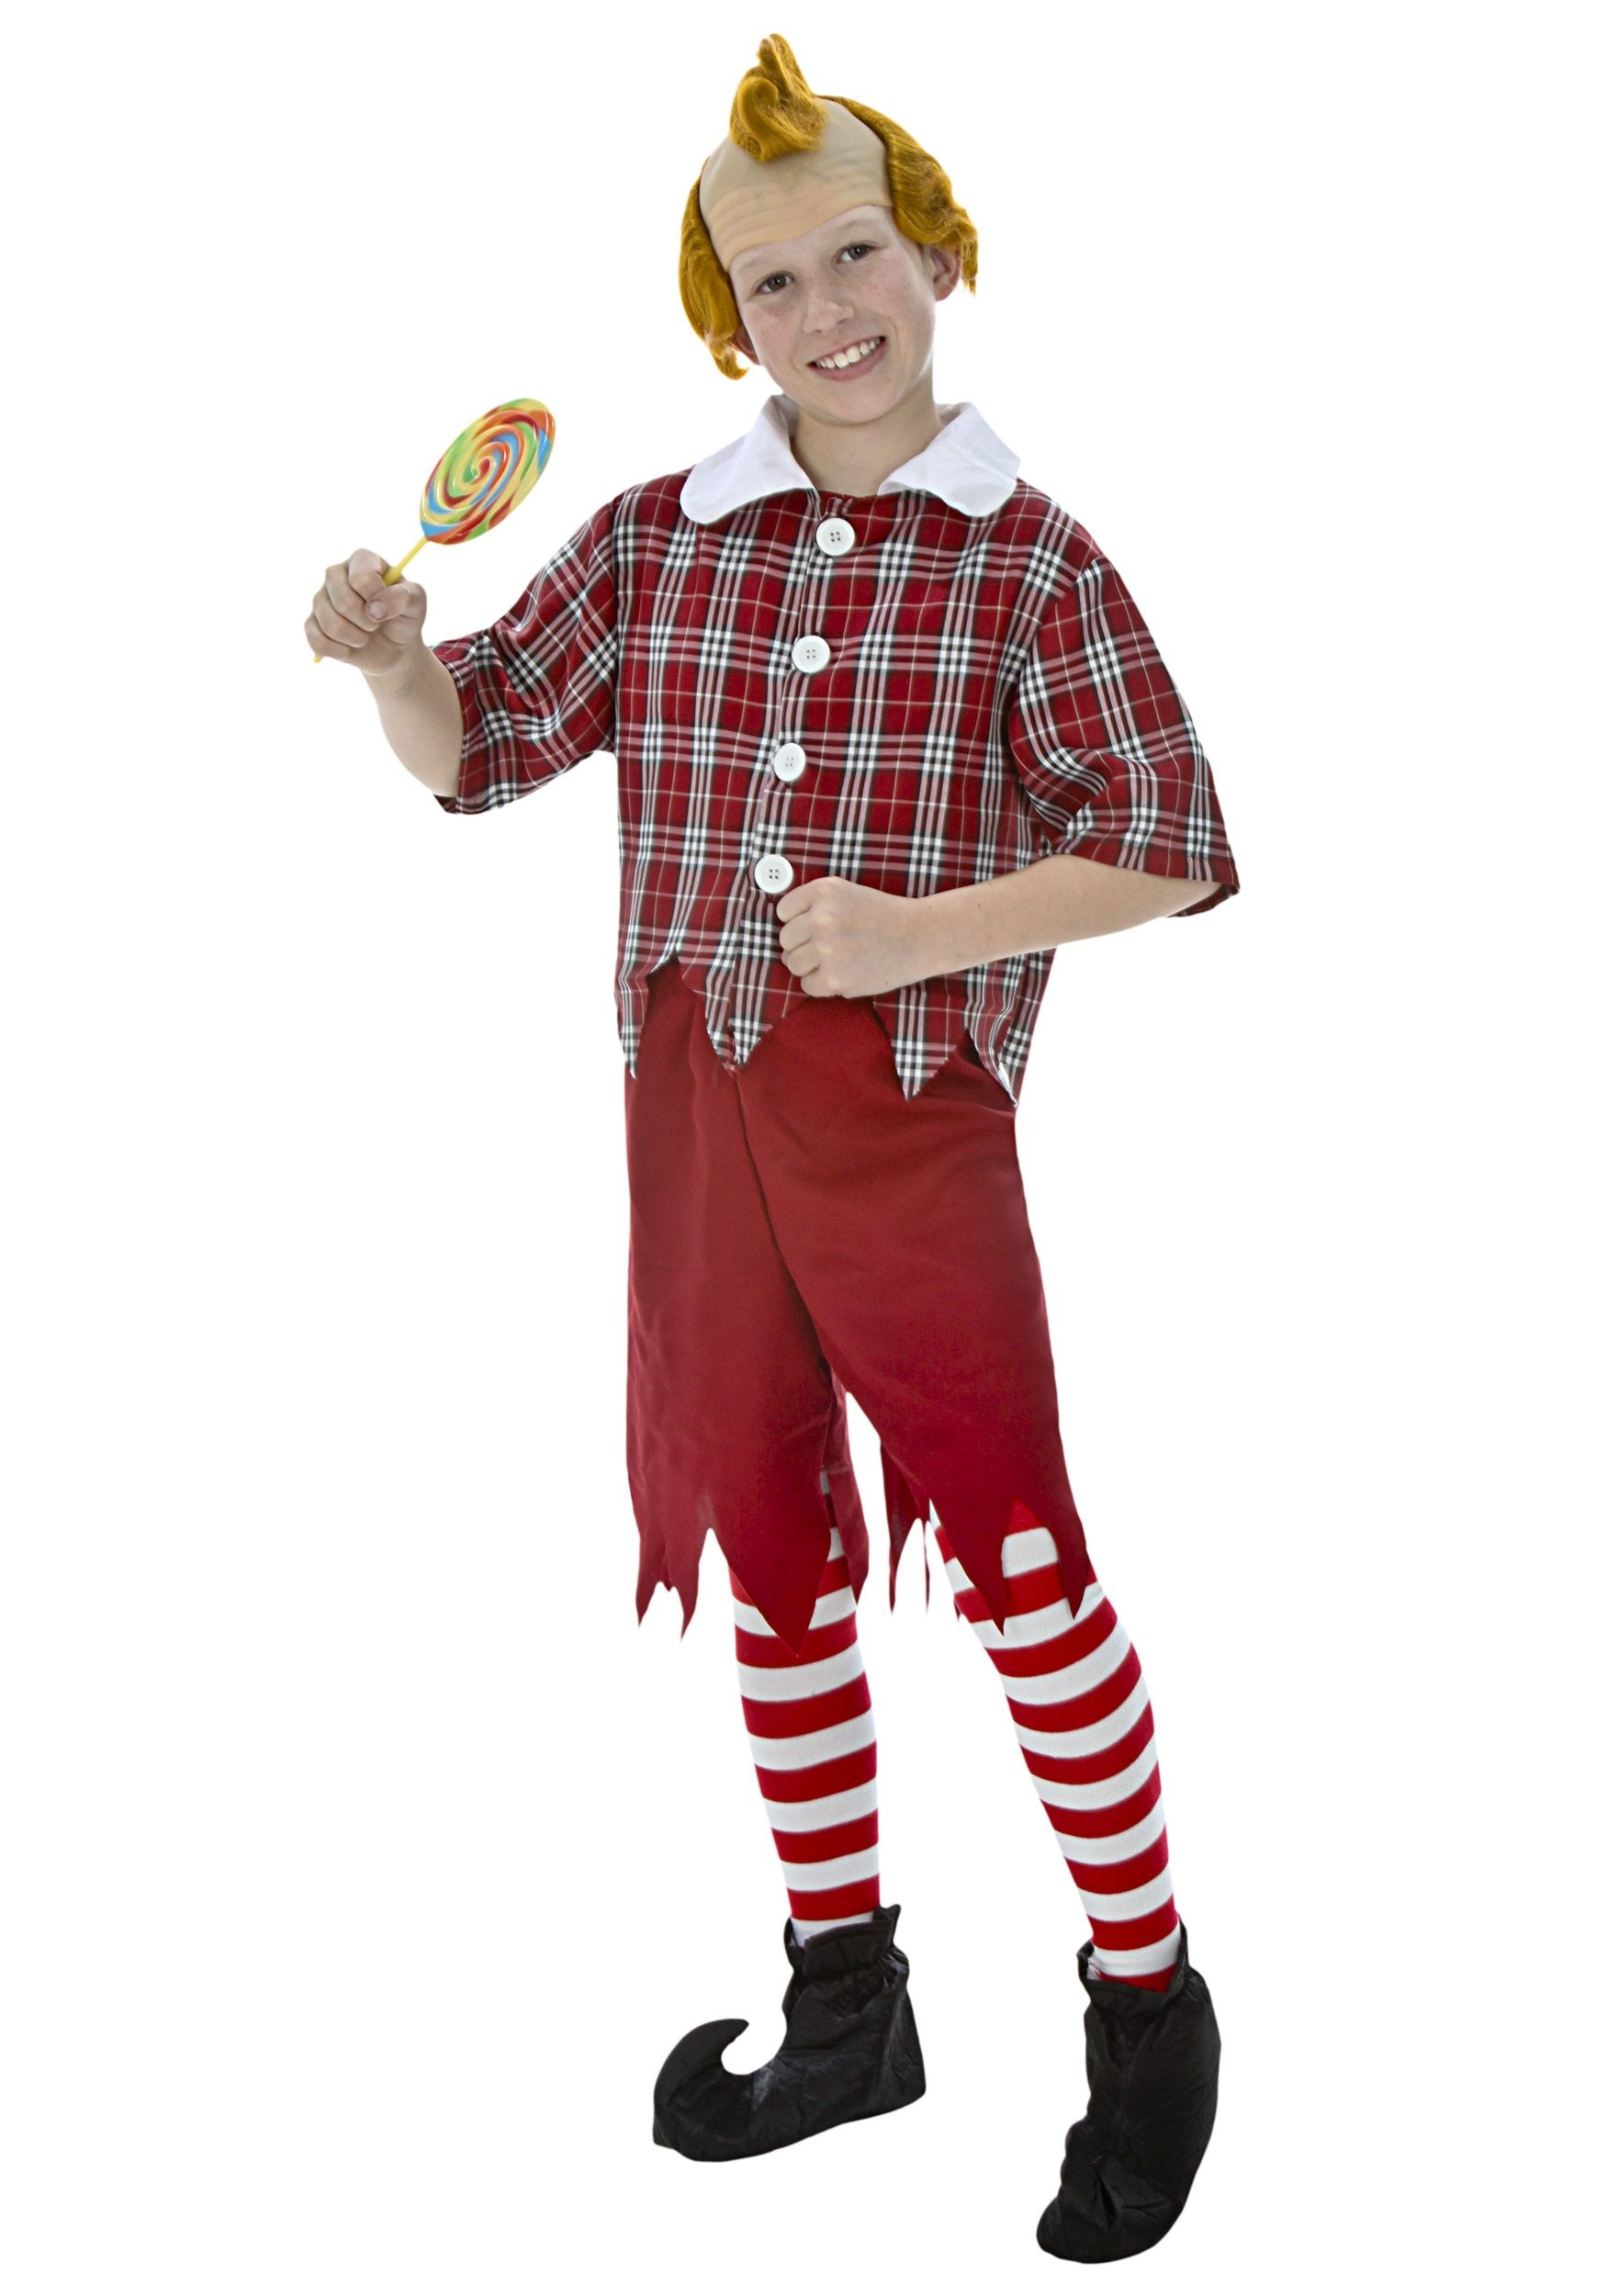 Make Wizard Oz Munchkins Costumes | ... Wonderful Wizard of Oz Characters Friends Red Munchkin Child Costume  sc 1 st  Pinterest & Make Wizard Oz Munchkins Costumes | ... Wonderful Wizard of Oz ...